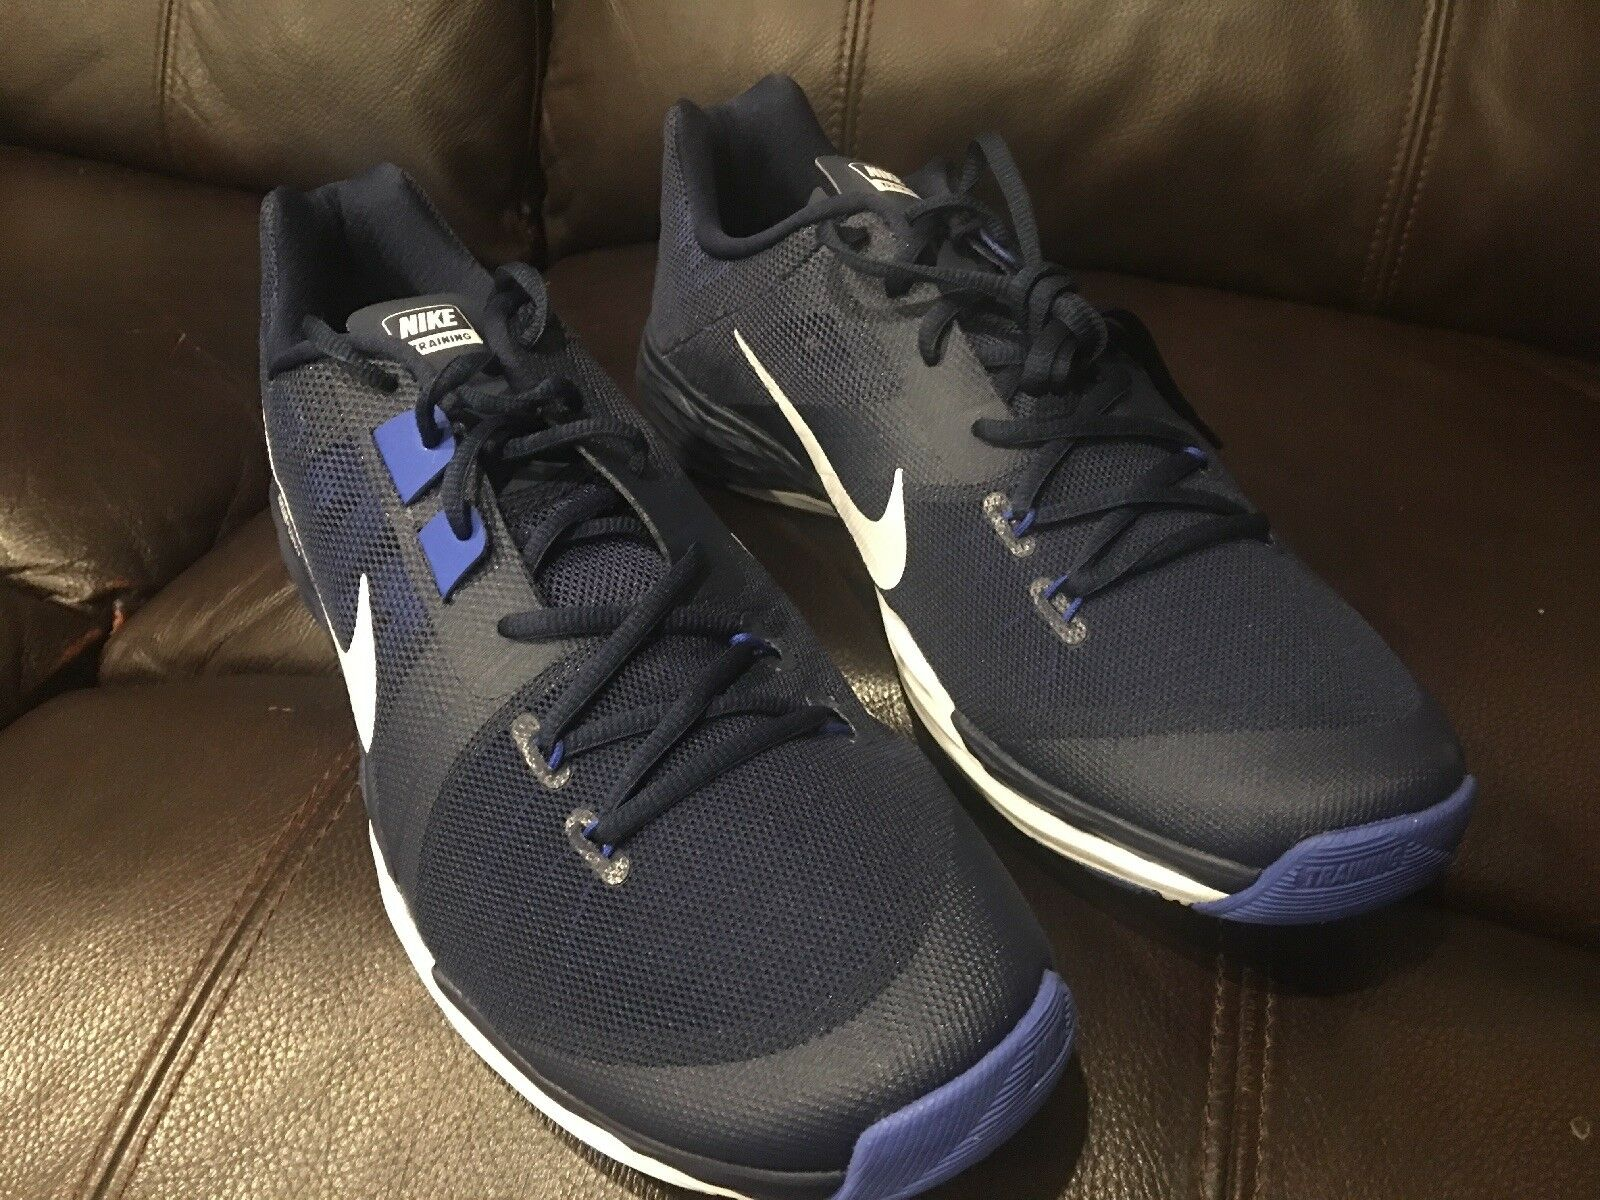 Authentic Nike Train Prime Iron DF bluee US 12 Men Sneakers 832219 With Box